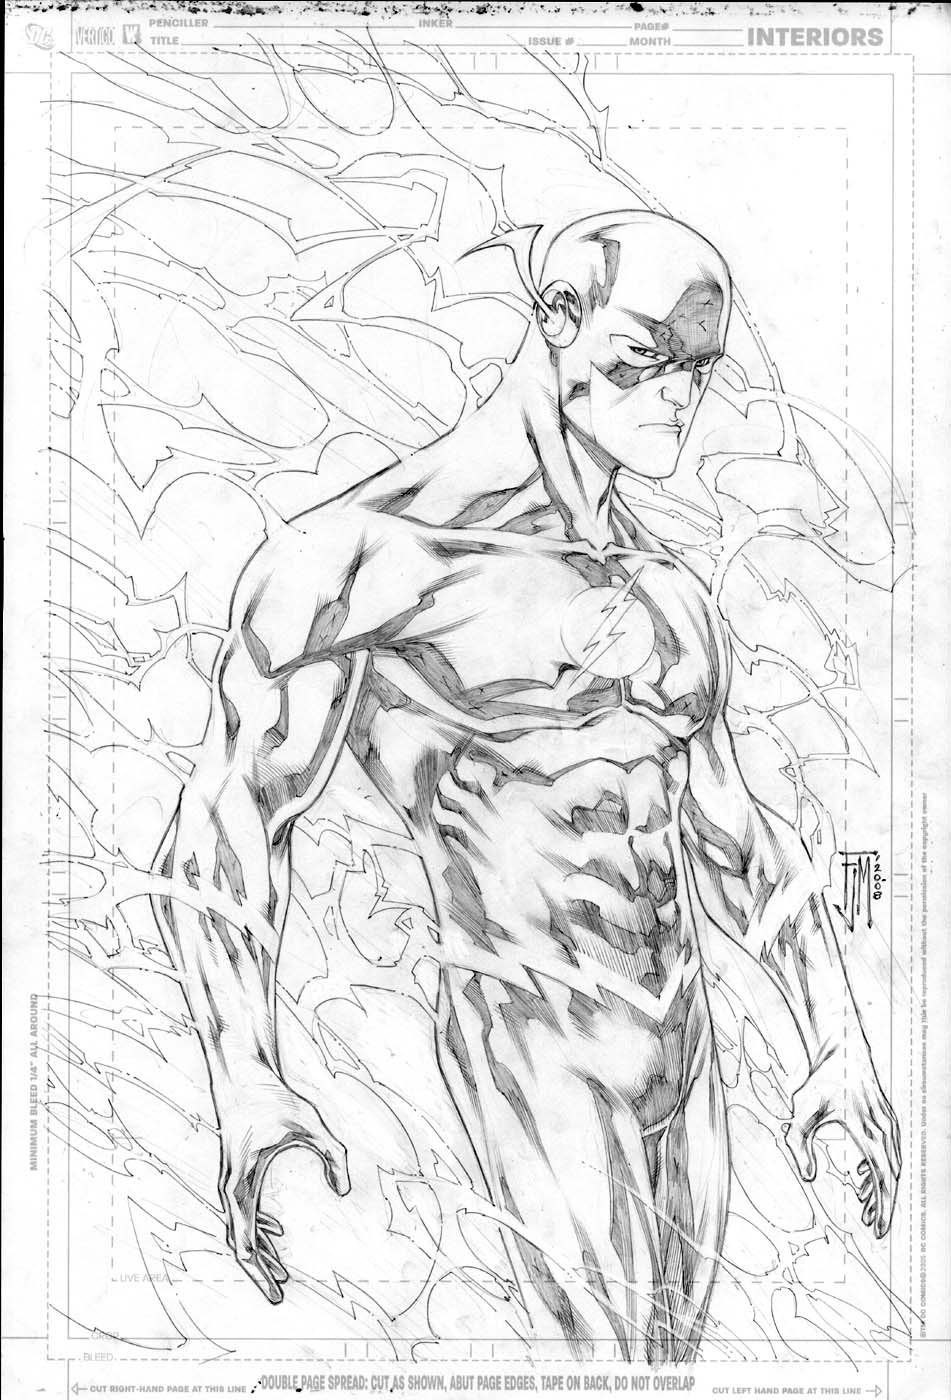 dc comics coloring pages 25 dc comics coloring book variant covers revealed ign dc comics coloring pages